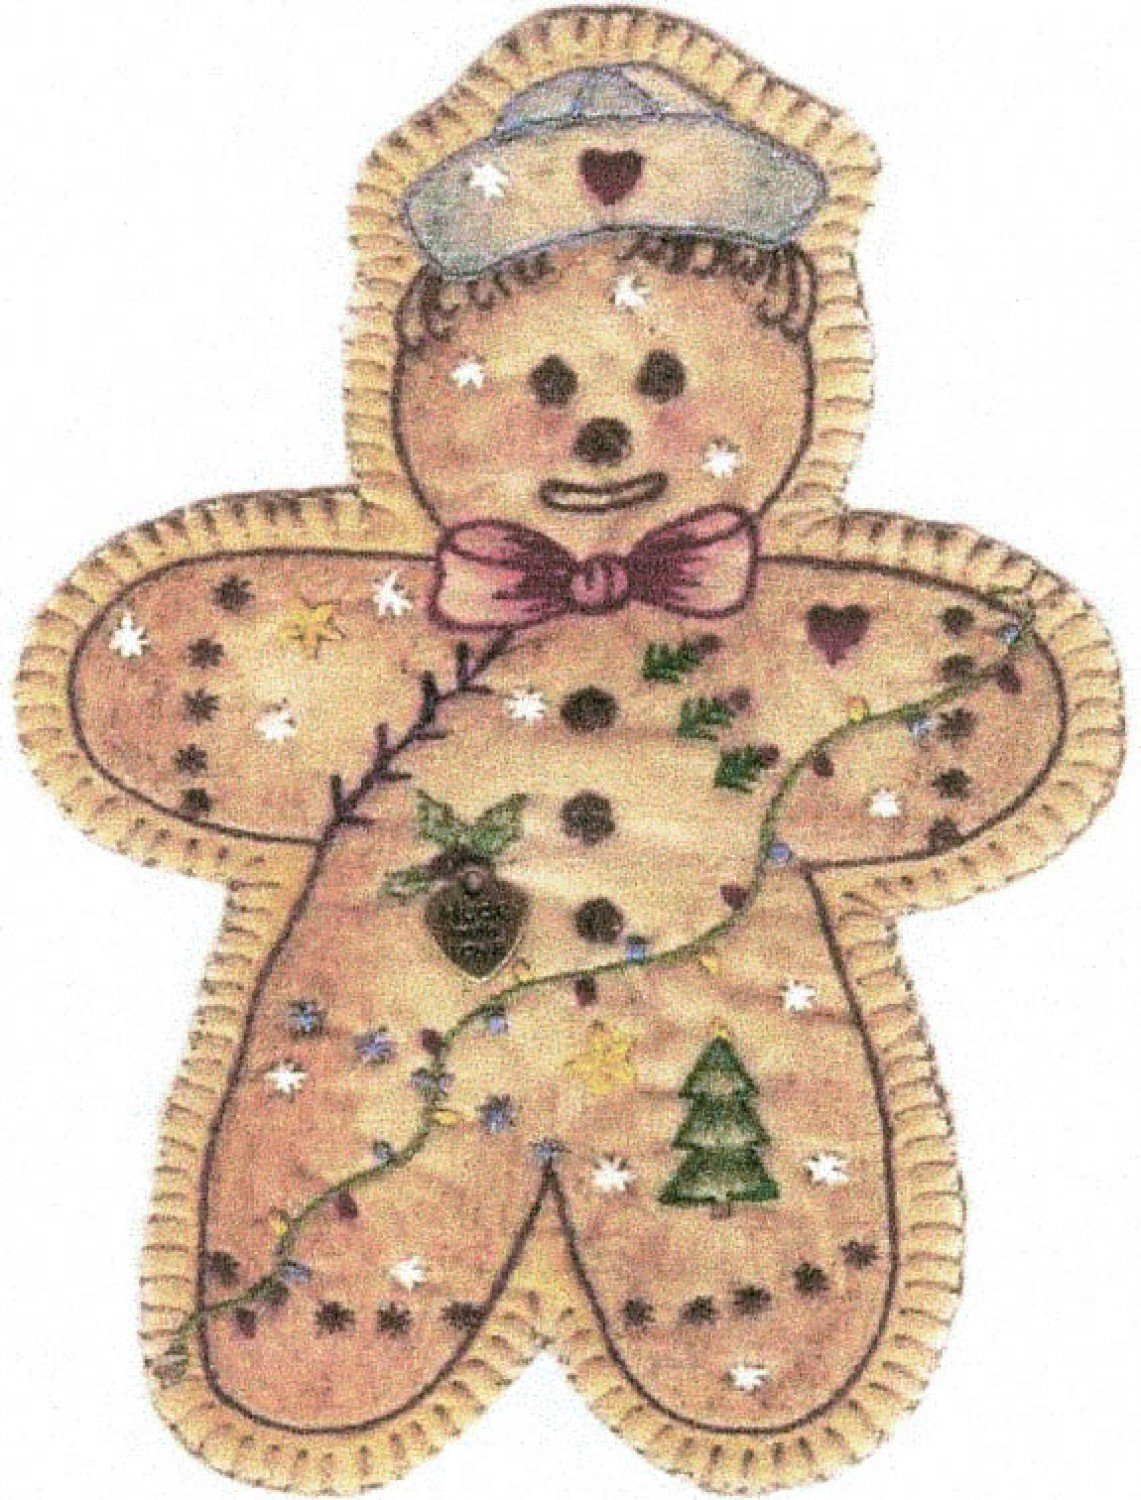 Vintage Christmas Ornament - CDHV15 - Gingerbread Boy